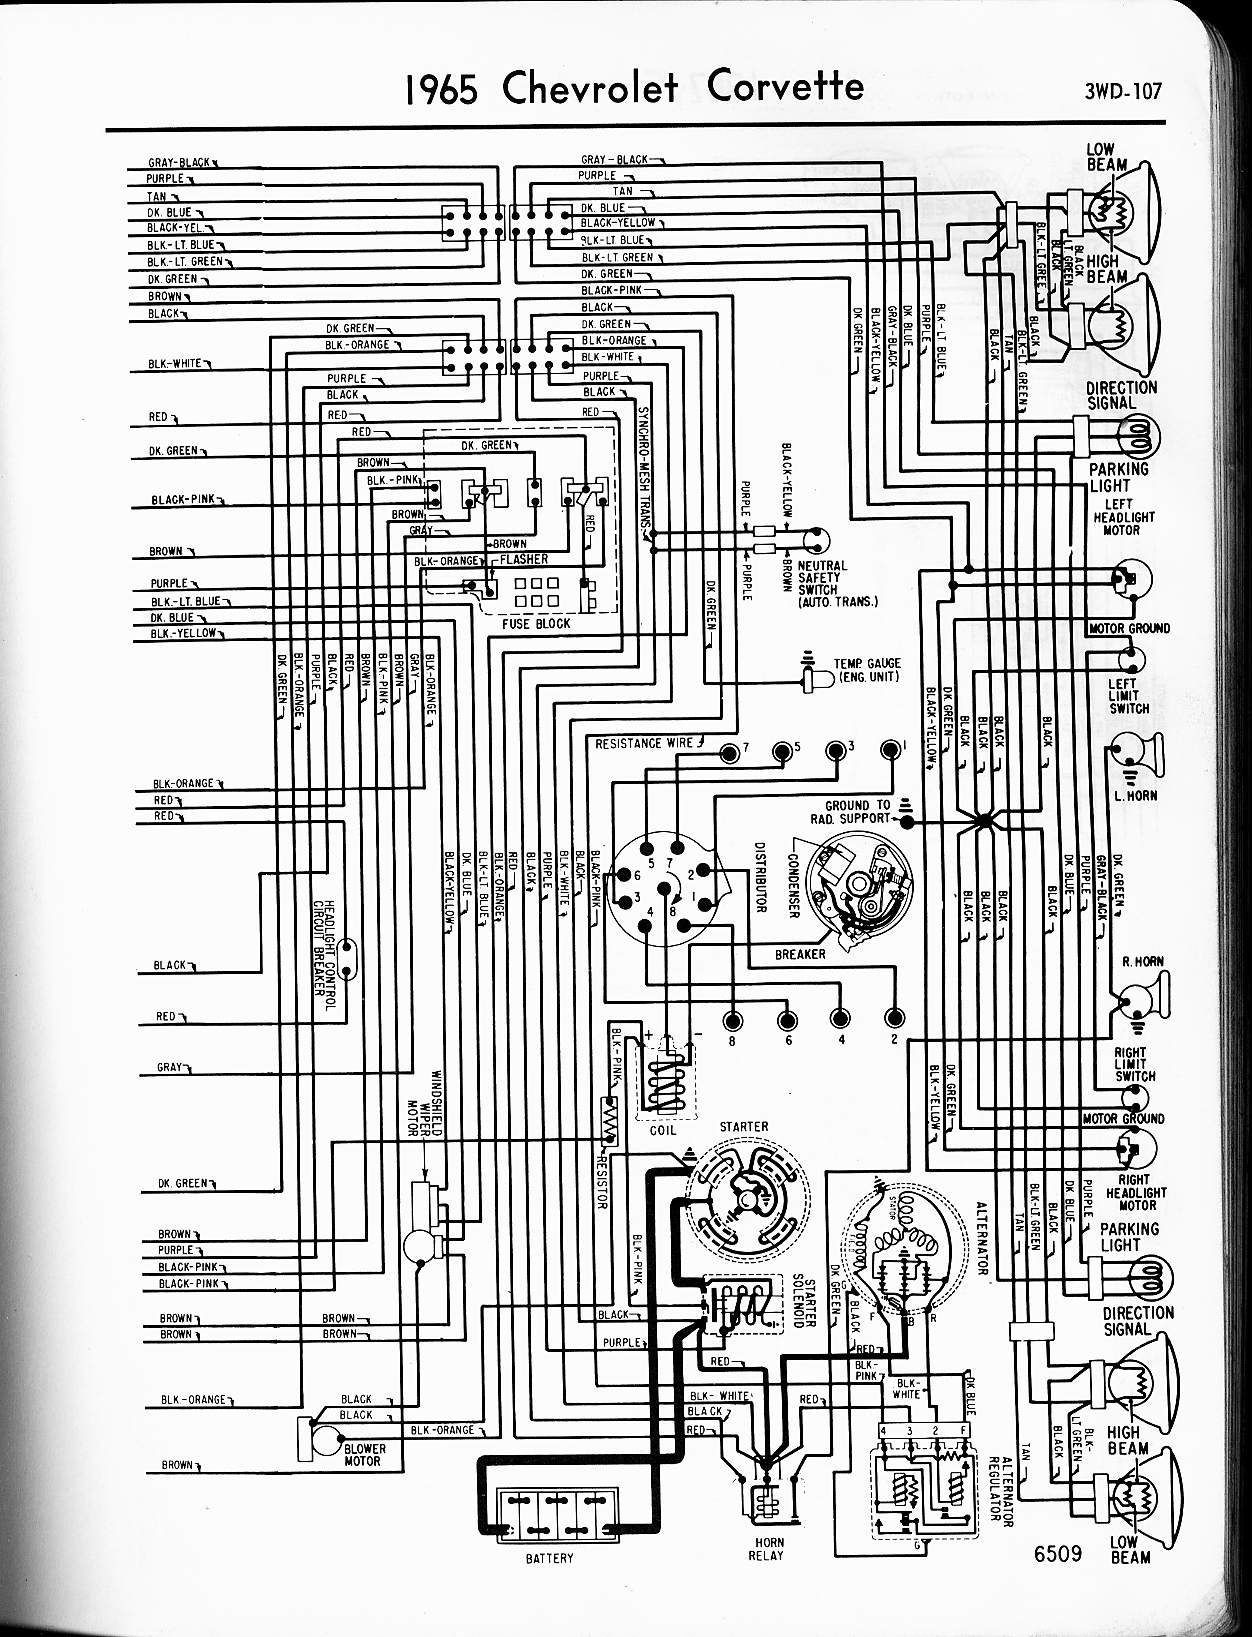 Corvette Schematics Diagrams Wiring Diagram Will Be A Thing C3 Headlight Free Picture Schematic 76 Stingray Another Blog About Rh Twosoutherndivas Co 1980 Horn Assembly Parts